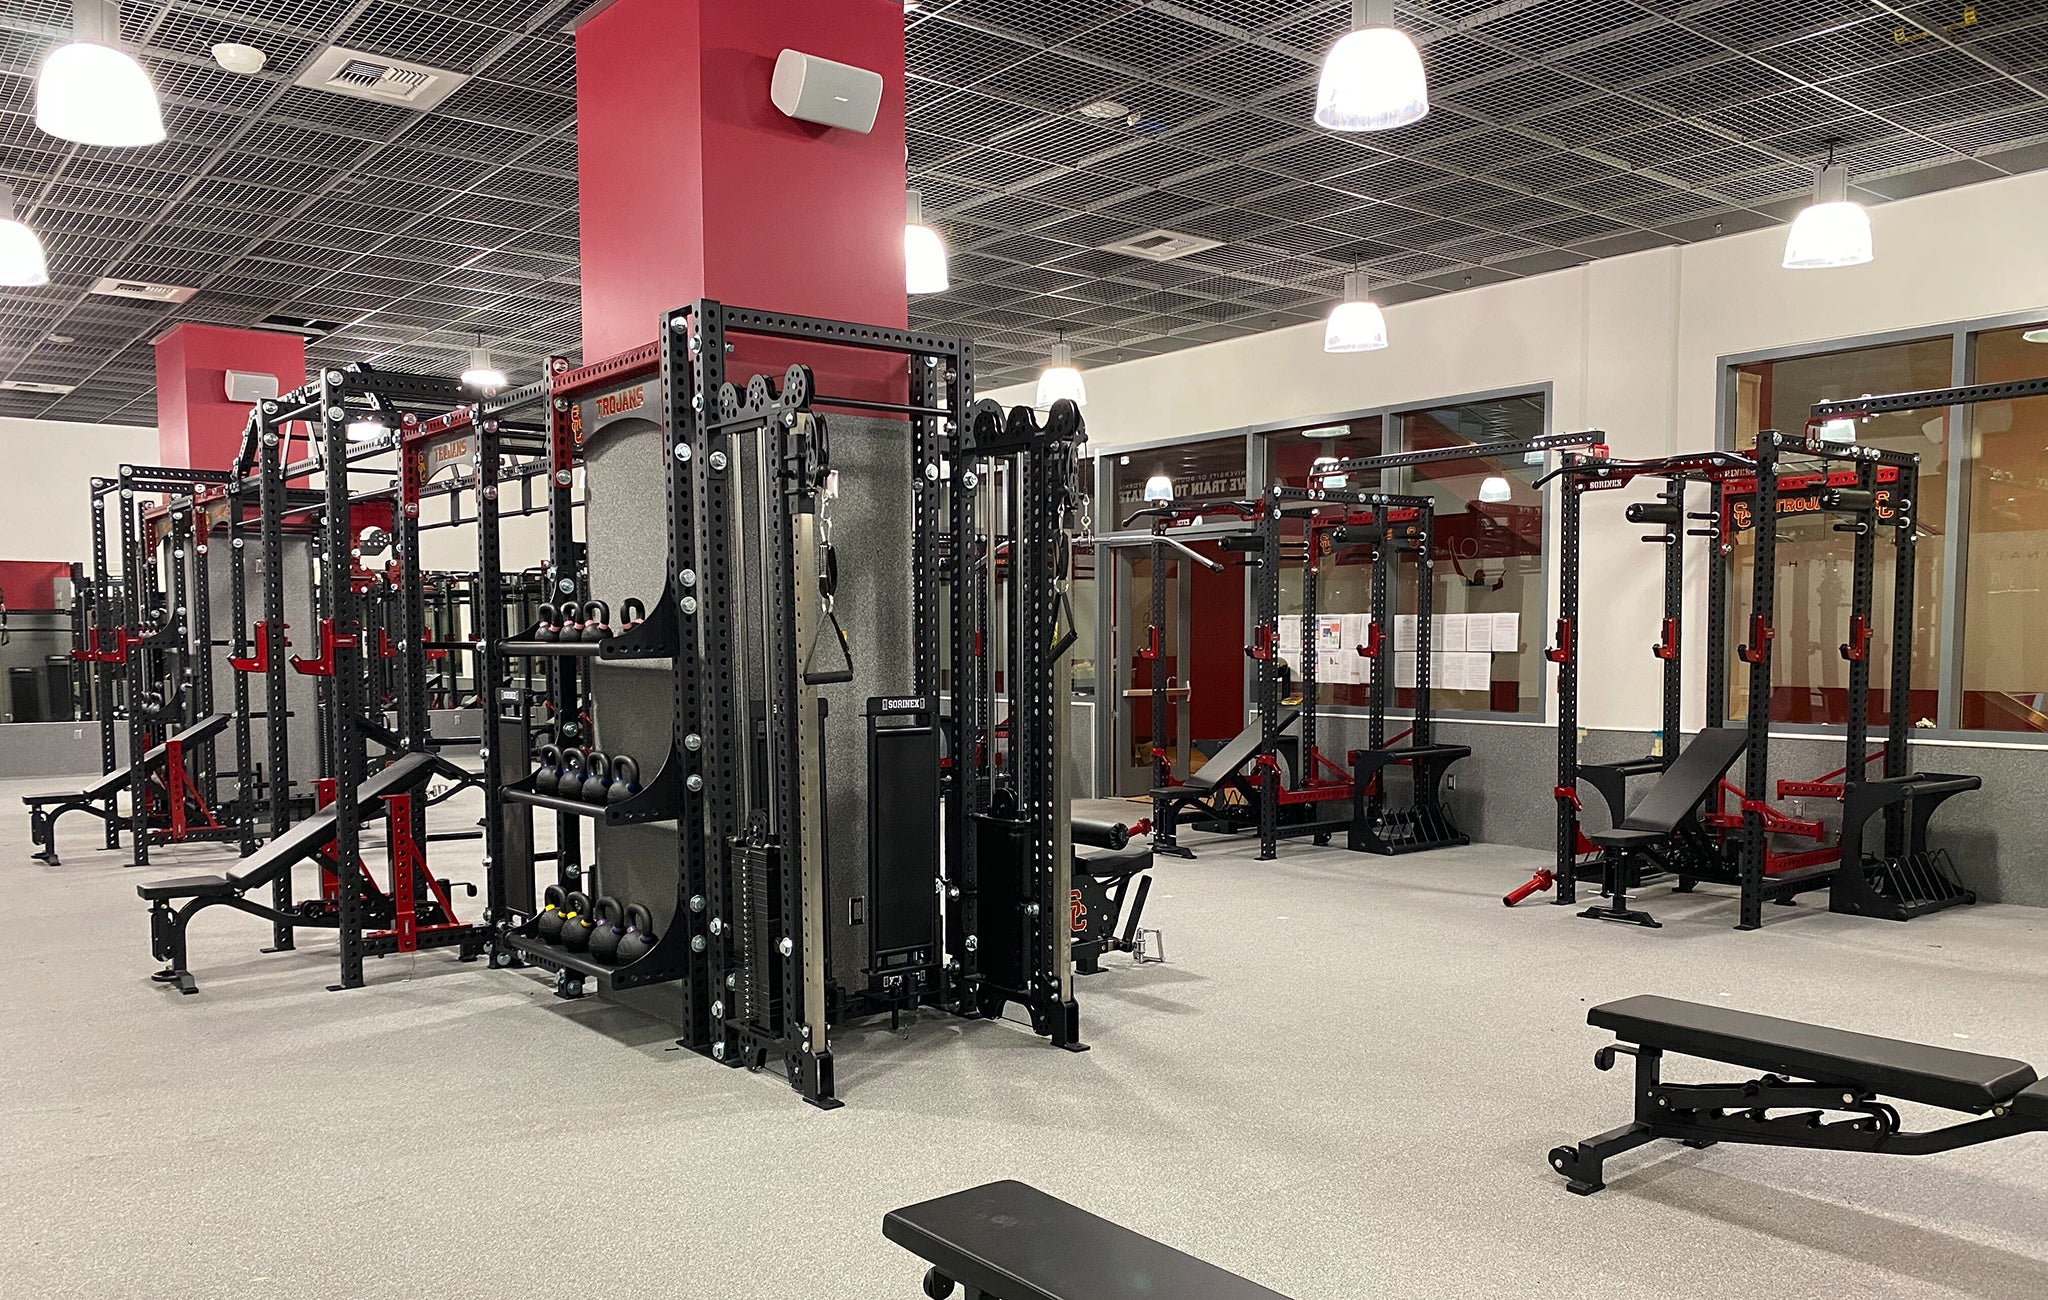 USC power racks